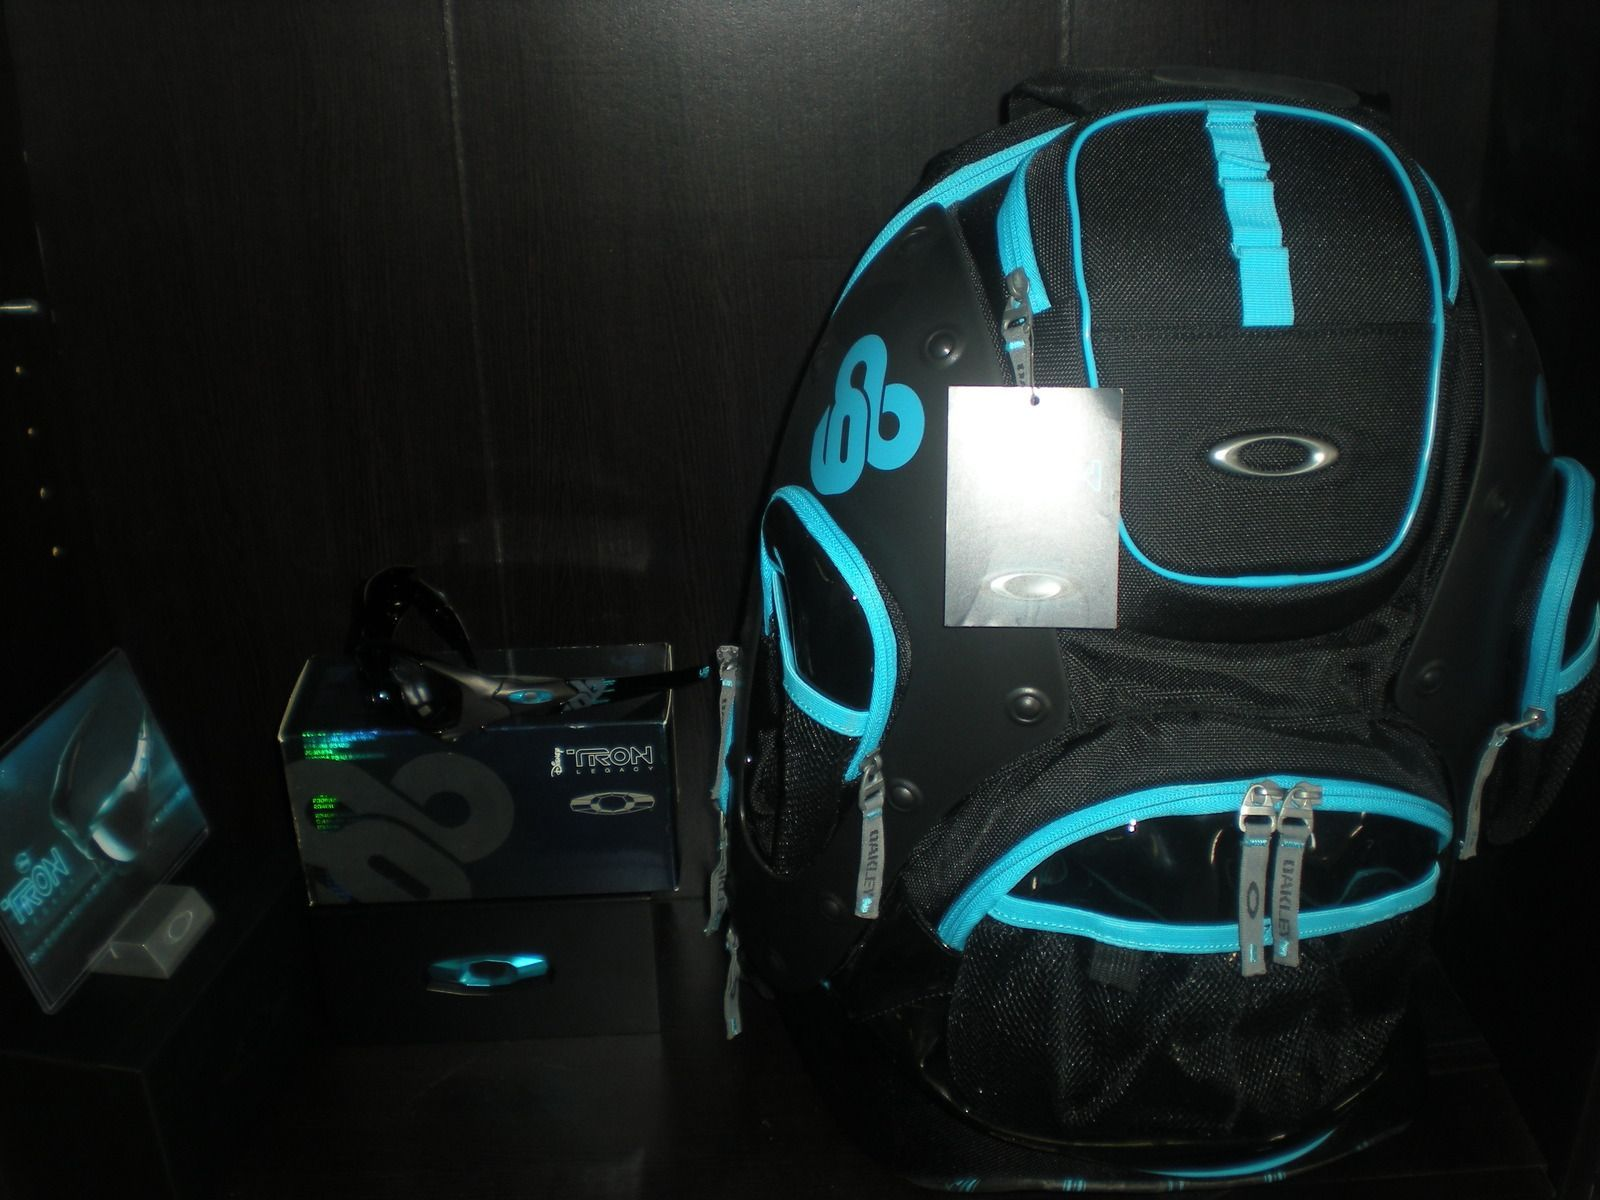 Tons Of Stuff!  Tron Pit Boss/Backpack Combo, JPM Splice NIB, And Much Much More!!!!! - dscn3156o.jpg